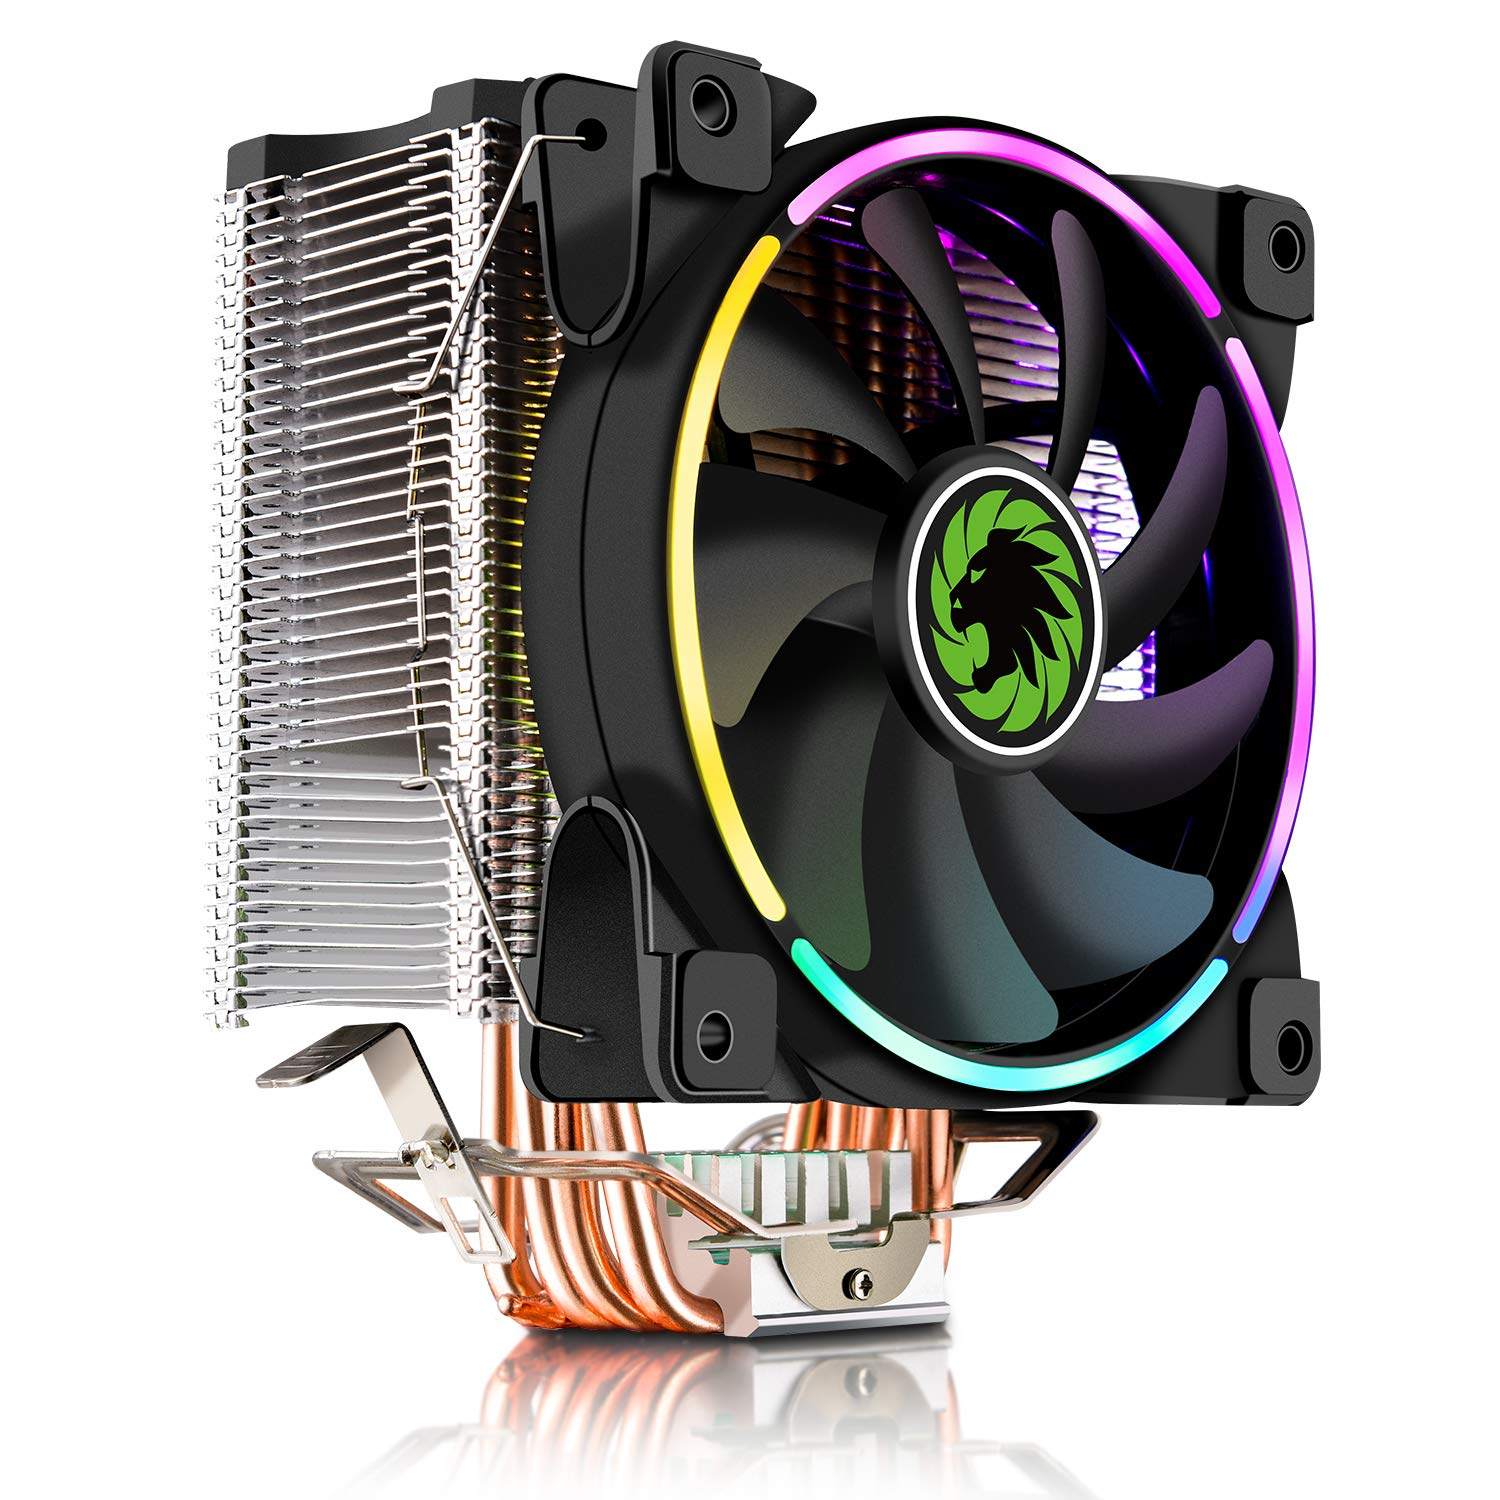 CPU Cooler, 120mm Addressable RGB PWM Fan with 4 Copper Heatpipes, GAMEMAX GAMMA-500-RAINBOW by GameMax